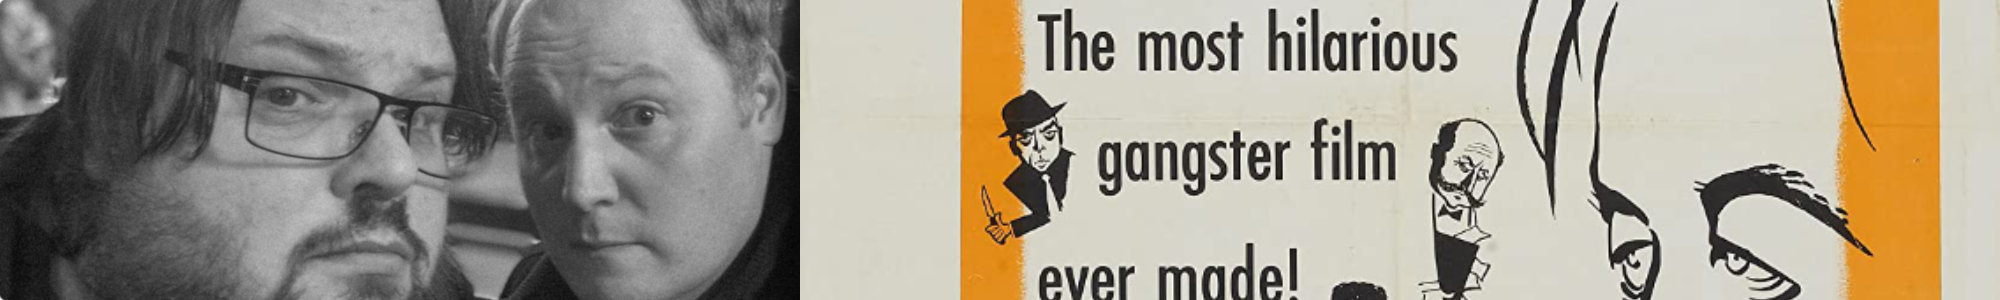 The Ladykillers Banner